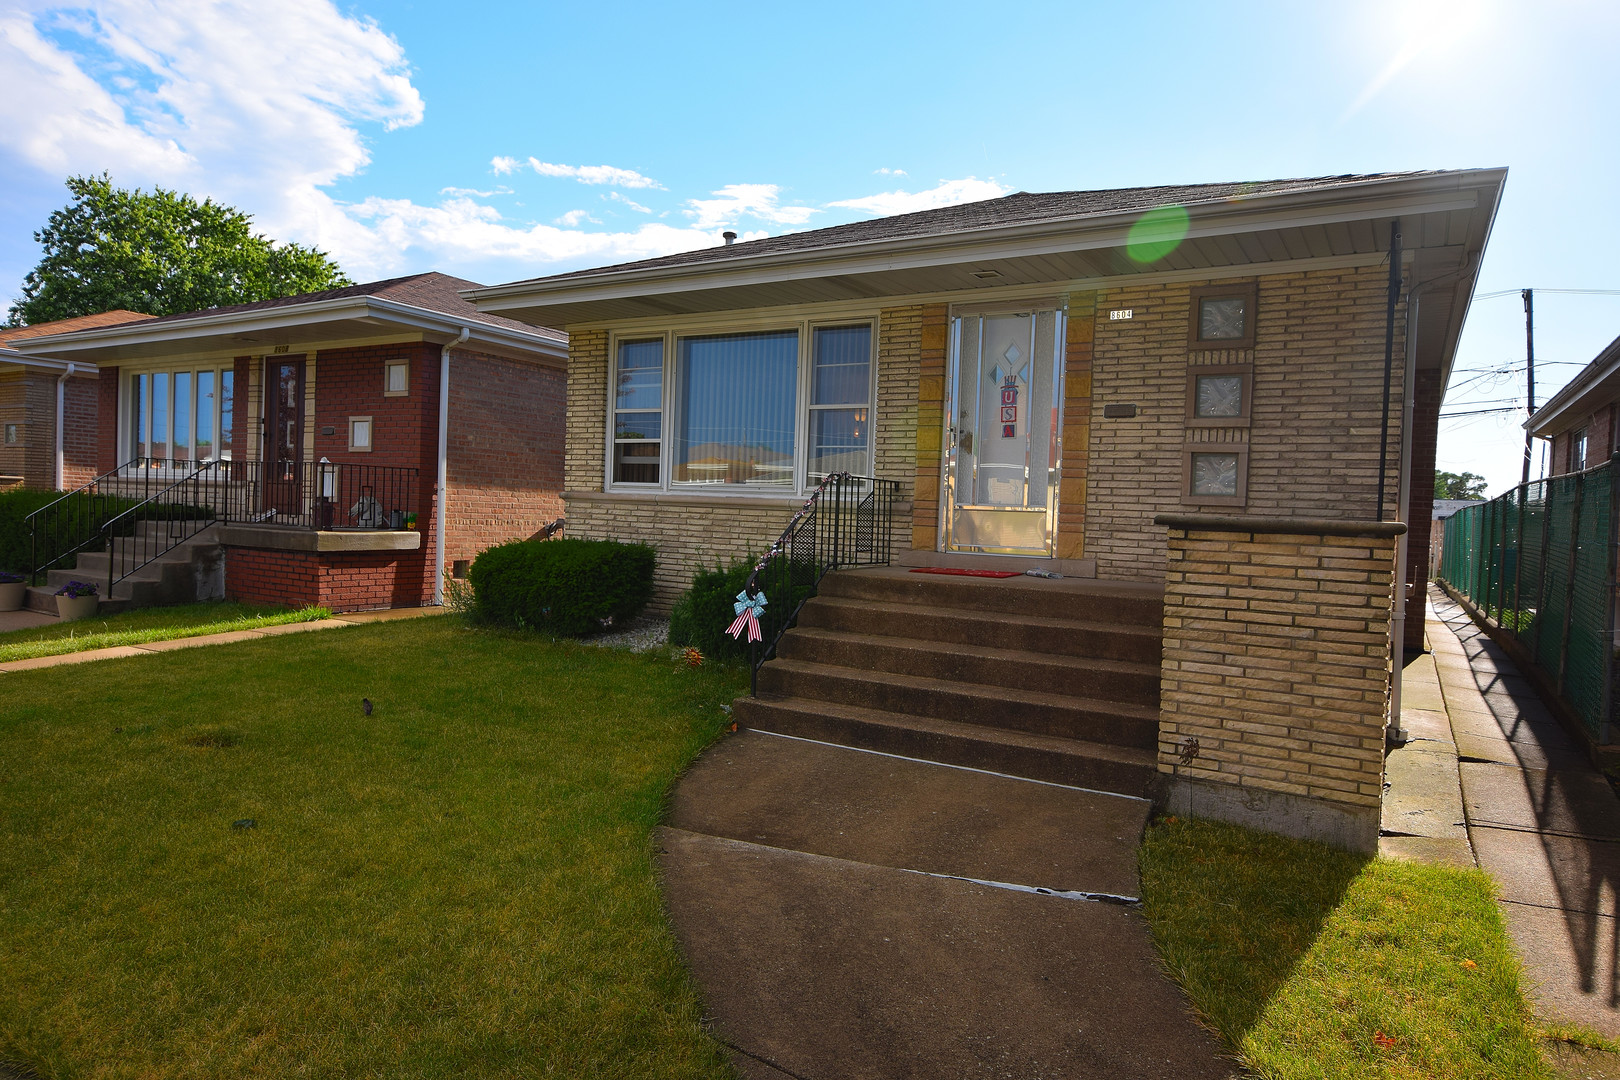 8604 S Keating Avenue, Chicago, IL 60652